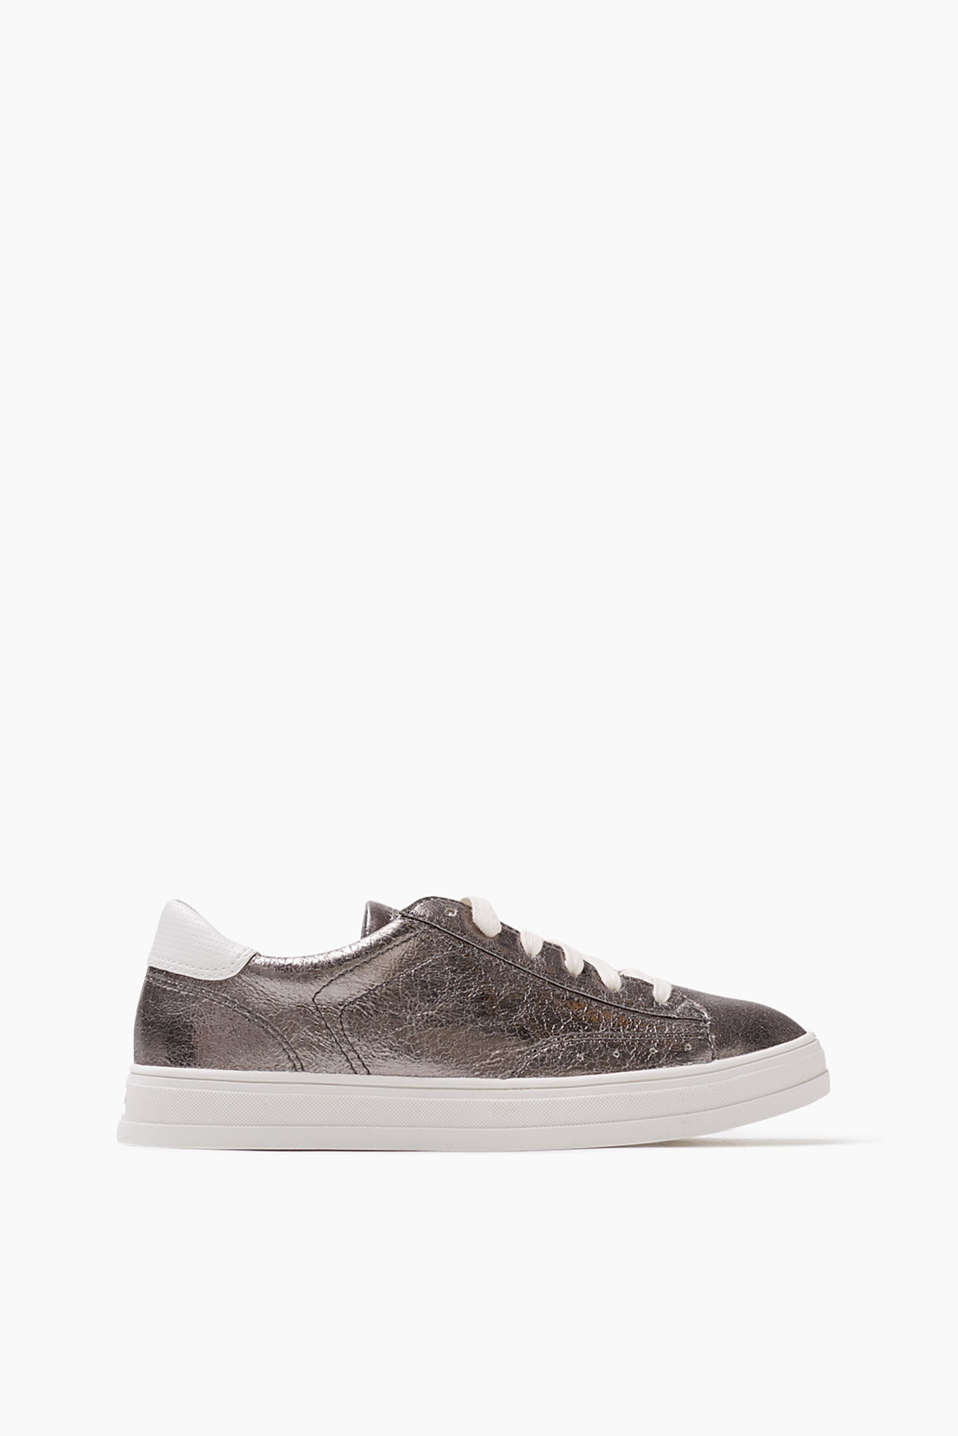 Trendy faux leather trainers in a metallic look with a rubber sole